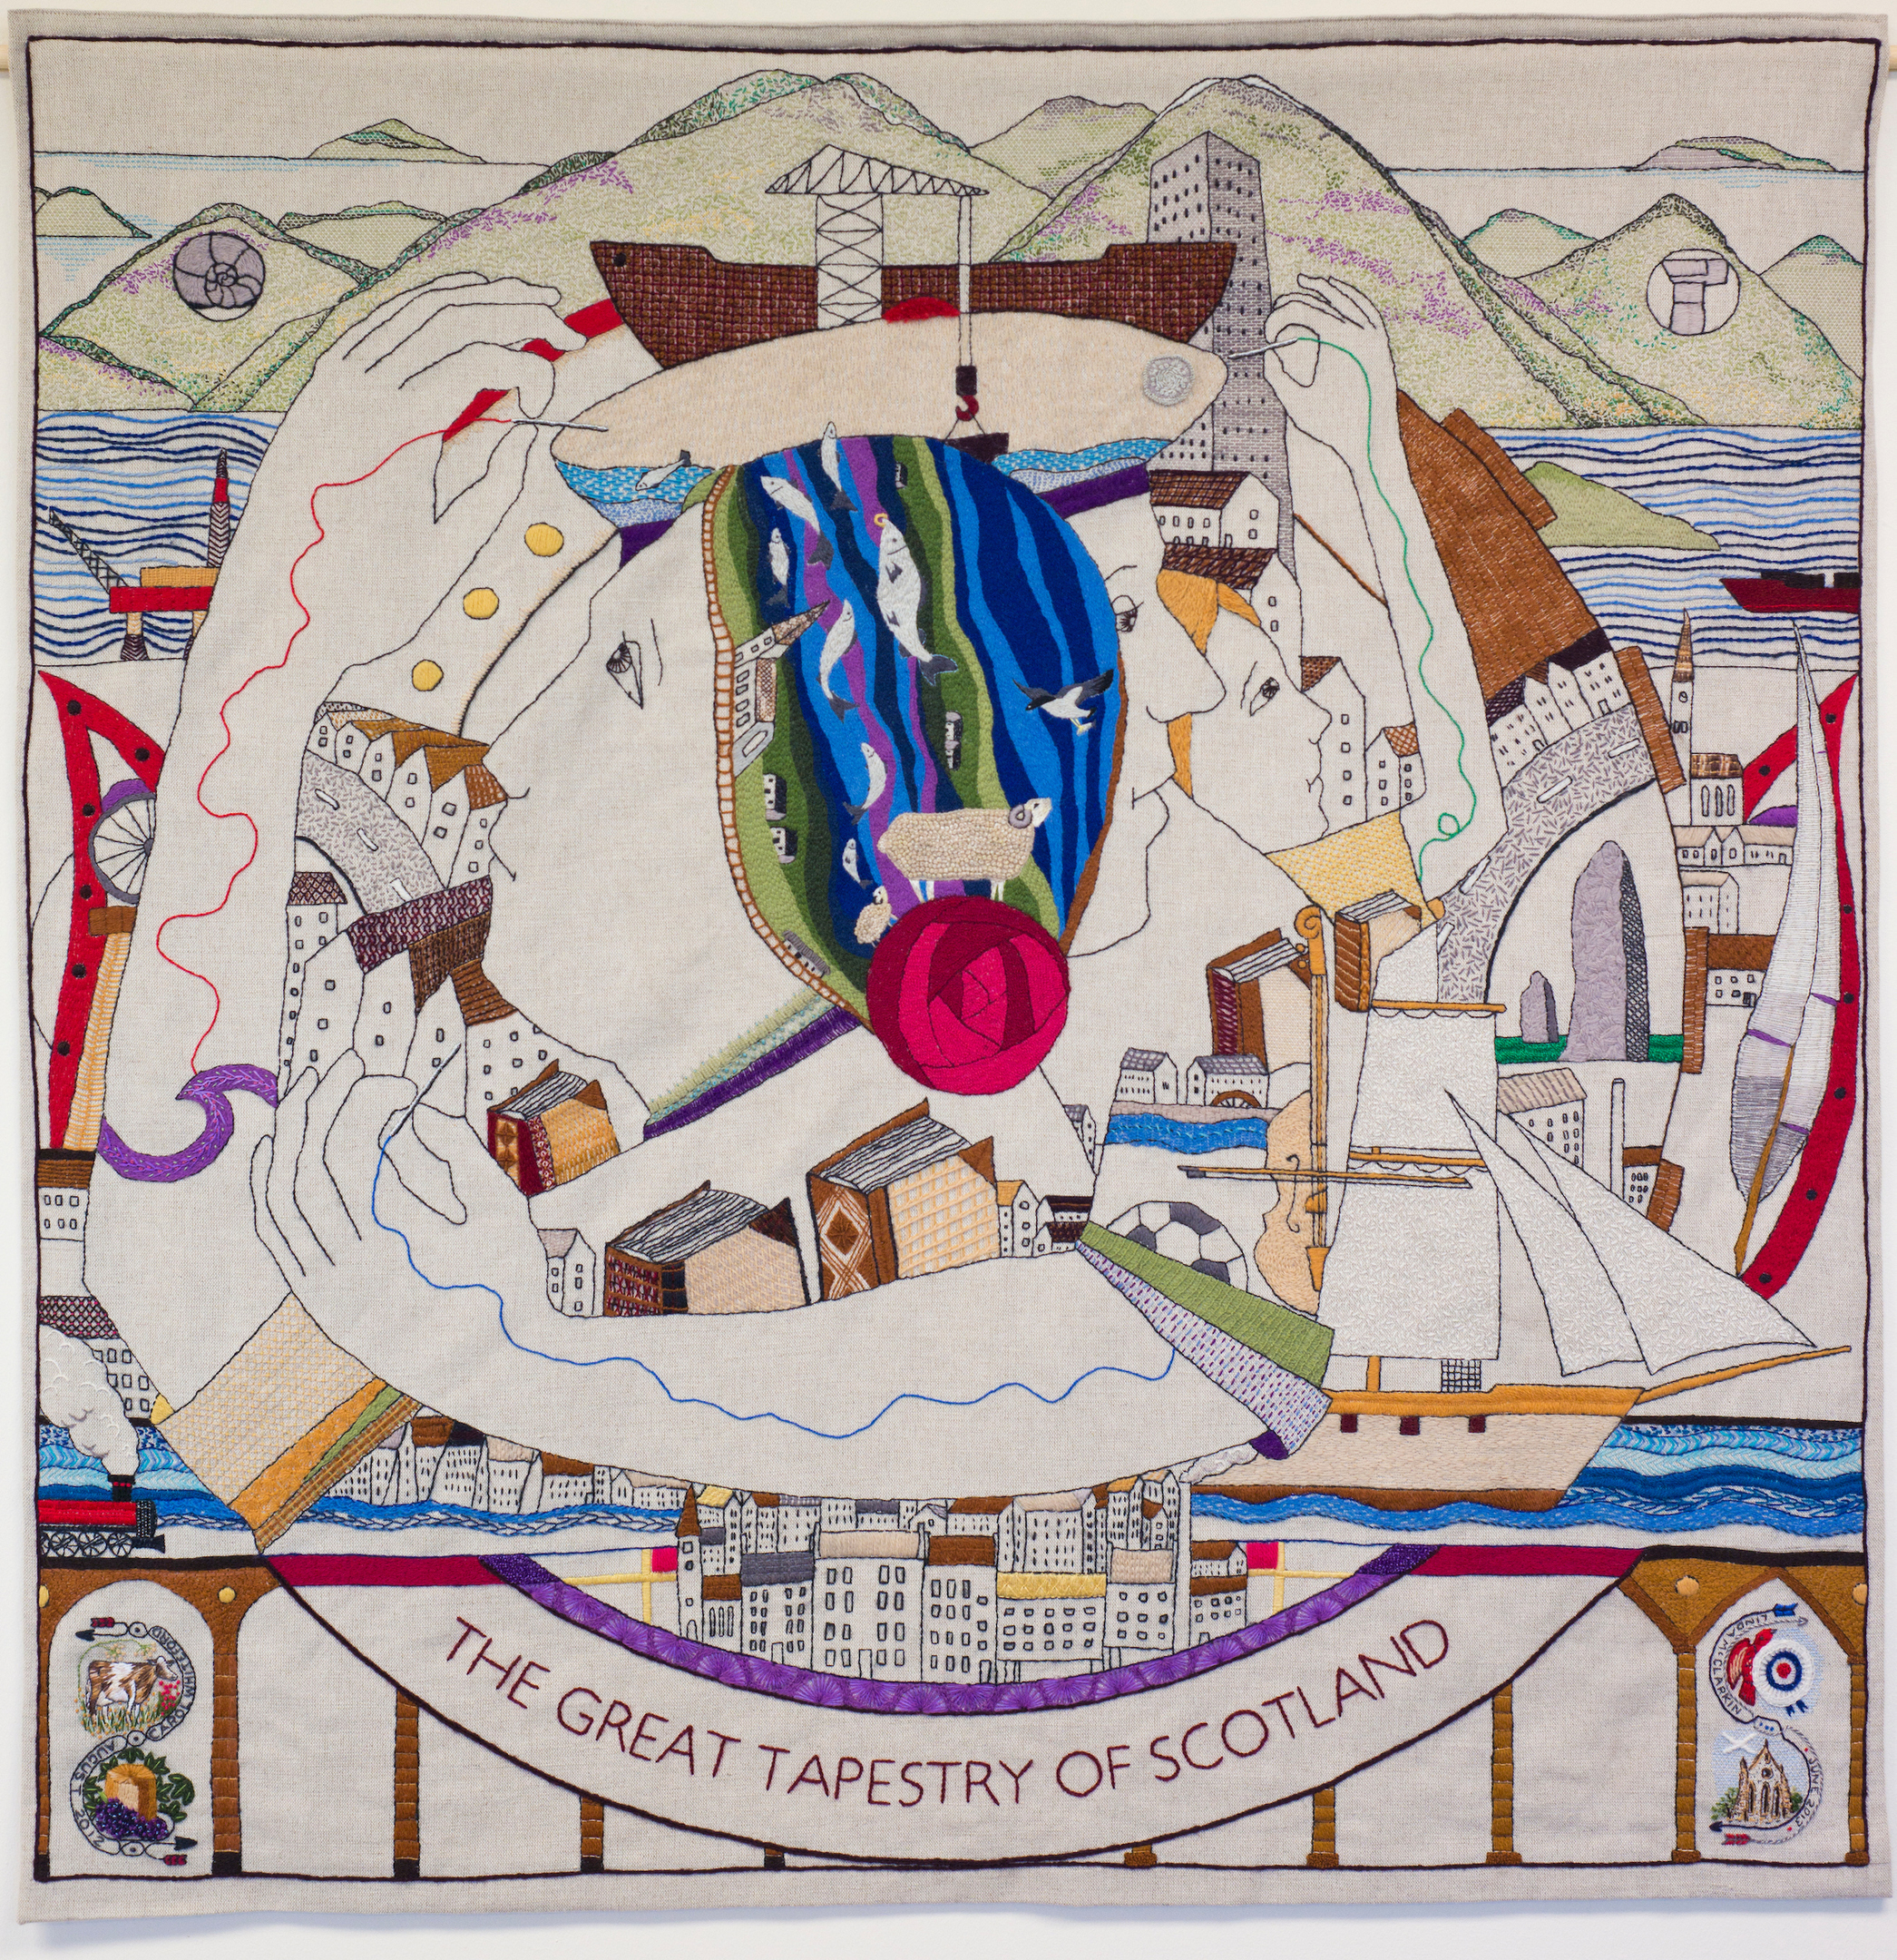 The tapestry depicts 2,000 years of Scotland's history